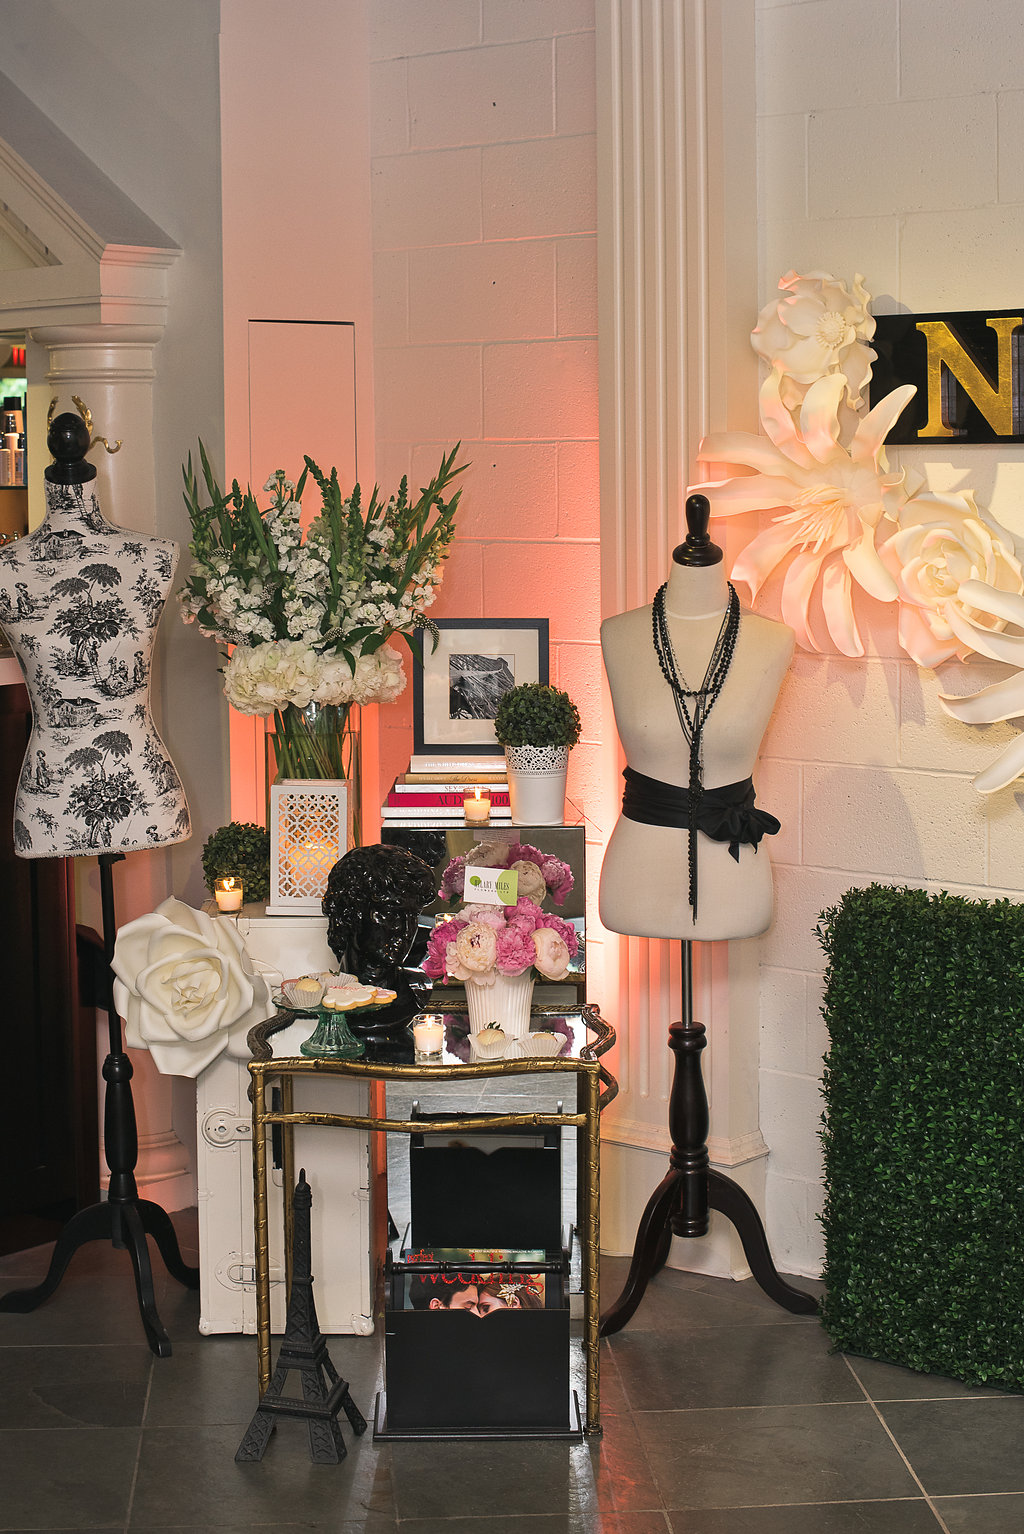 Gratitude with NadittudeTM, Debut Event Design, Hilary Miles, Nadia Albano Style Inc, Daniella Guzzo Photography